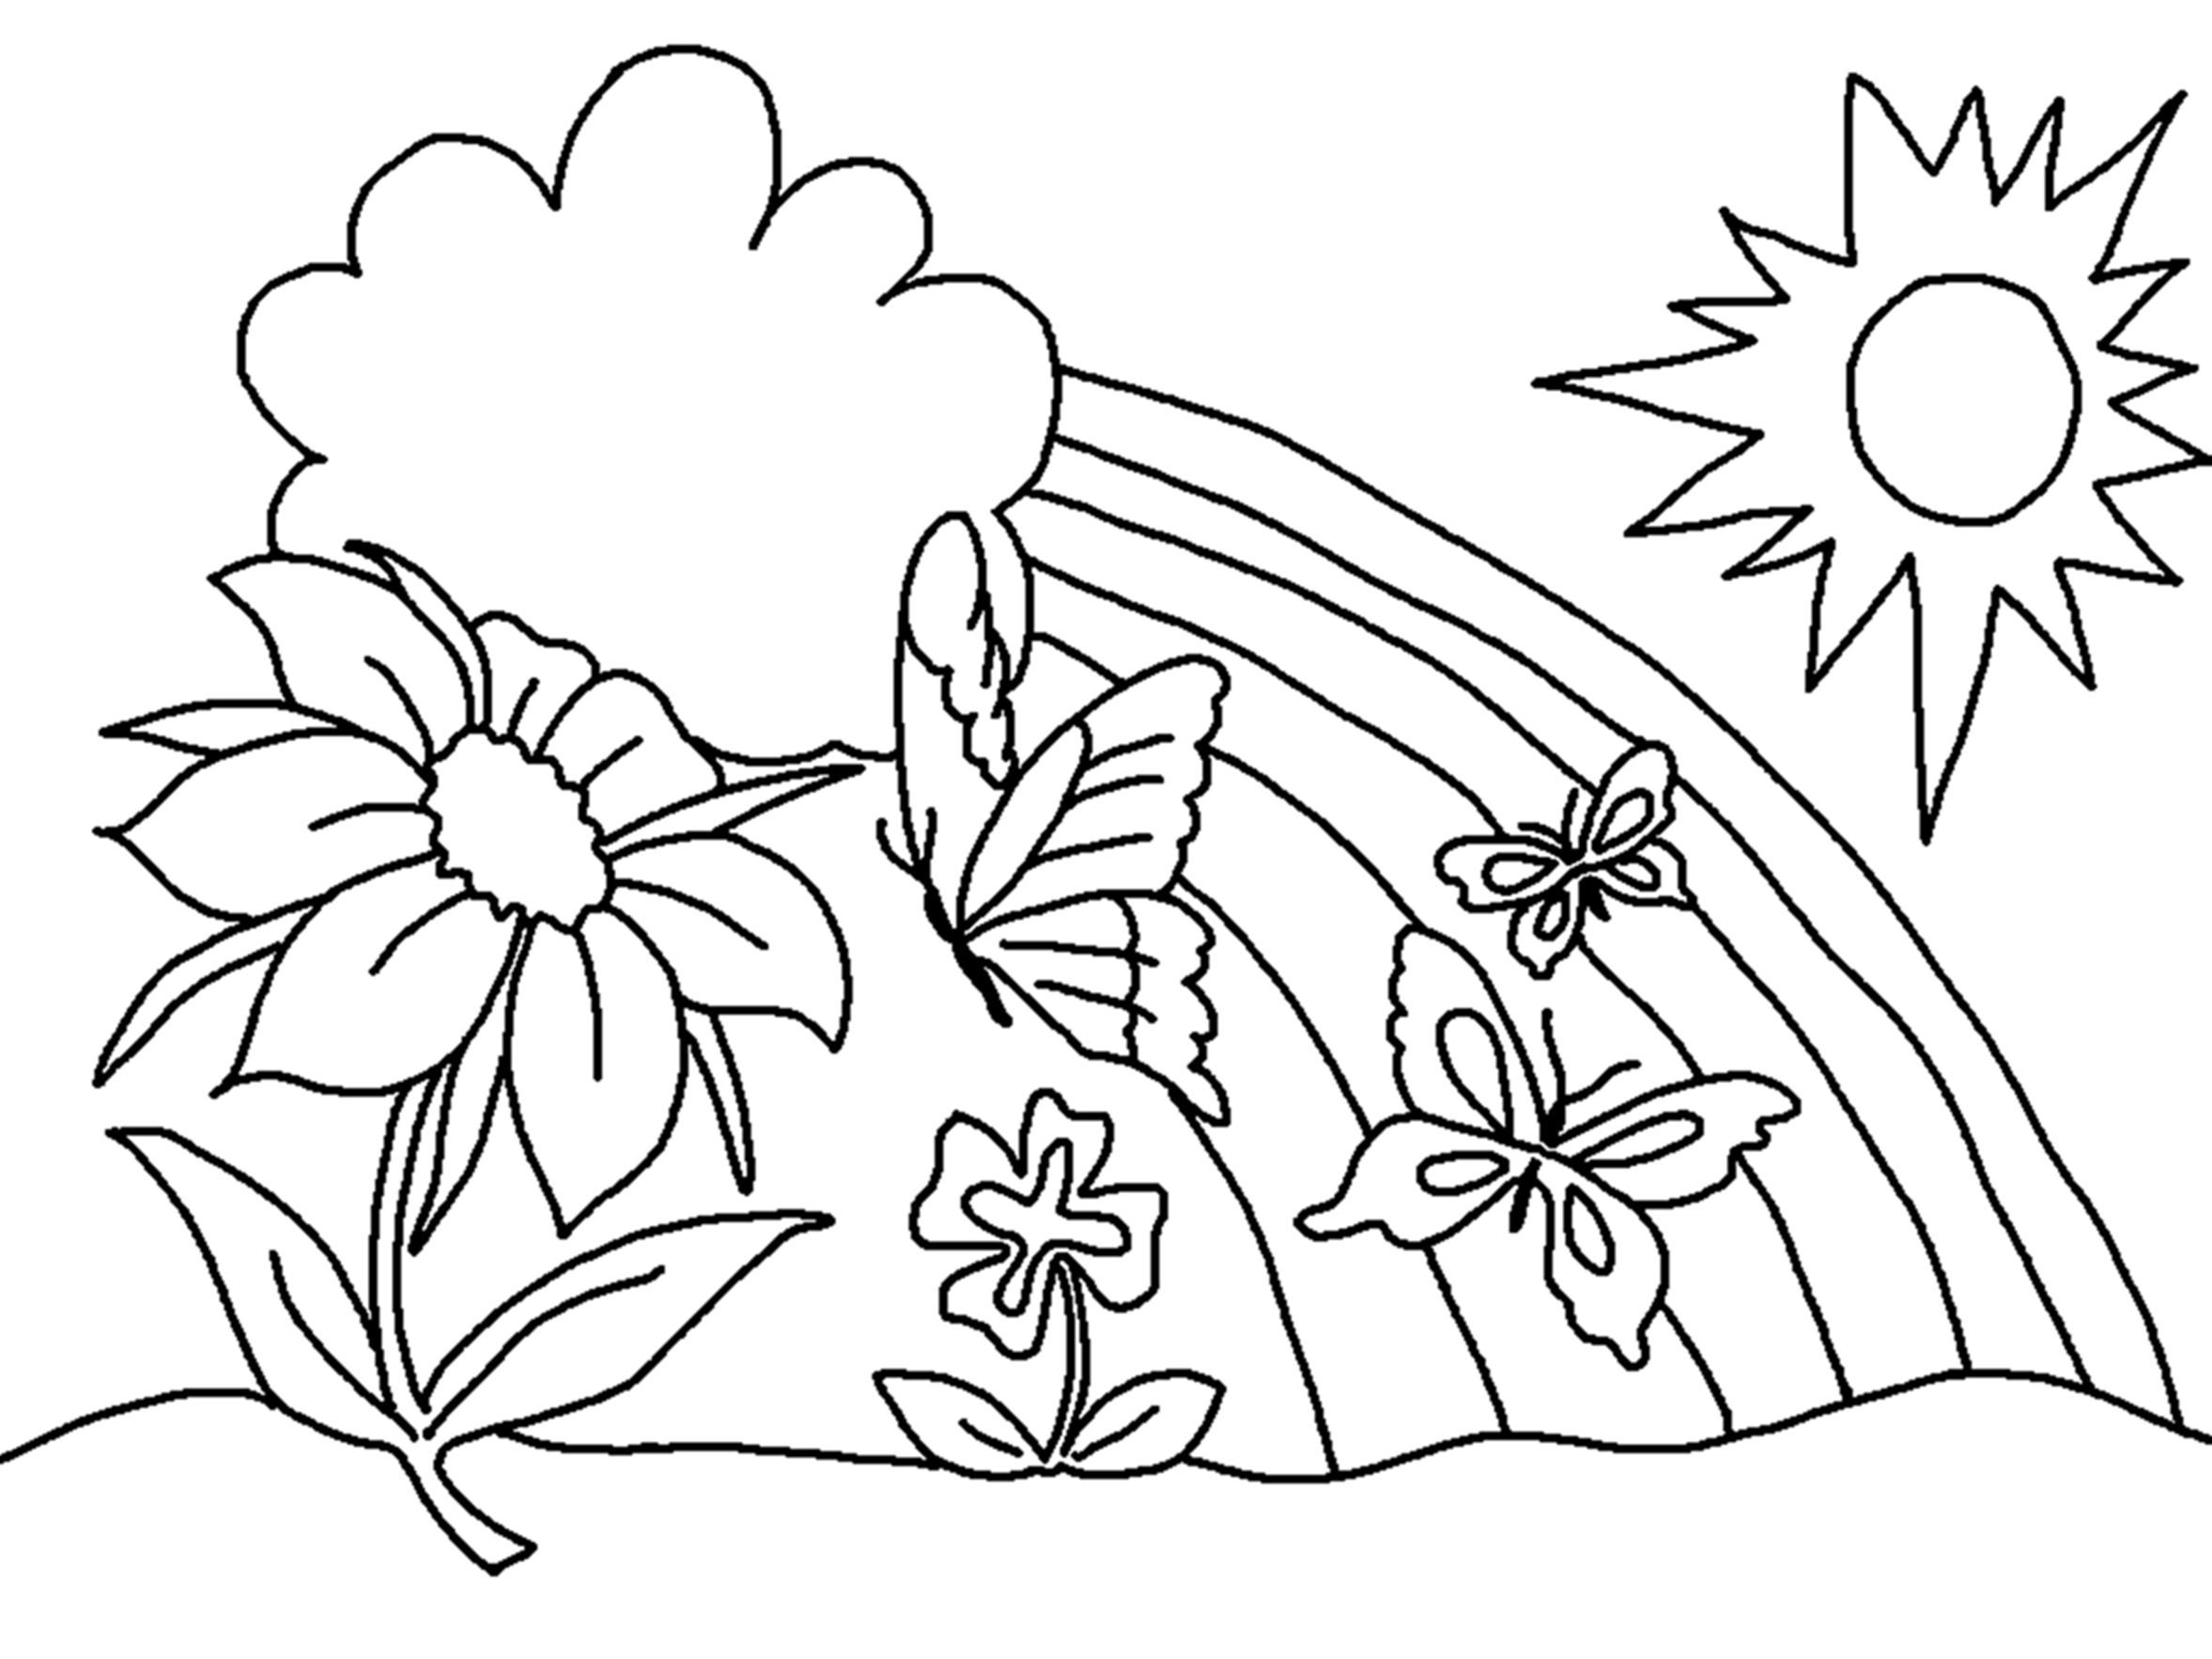 Free printable coloring in pages - Download Free Flower Coloring Page